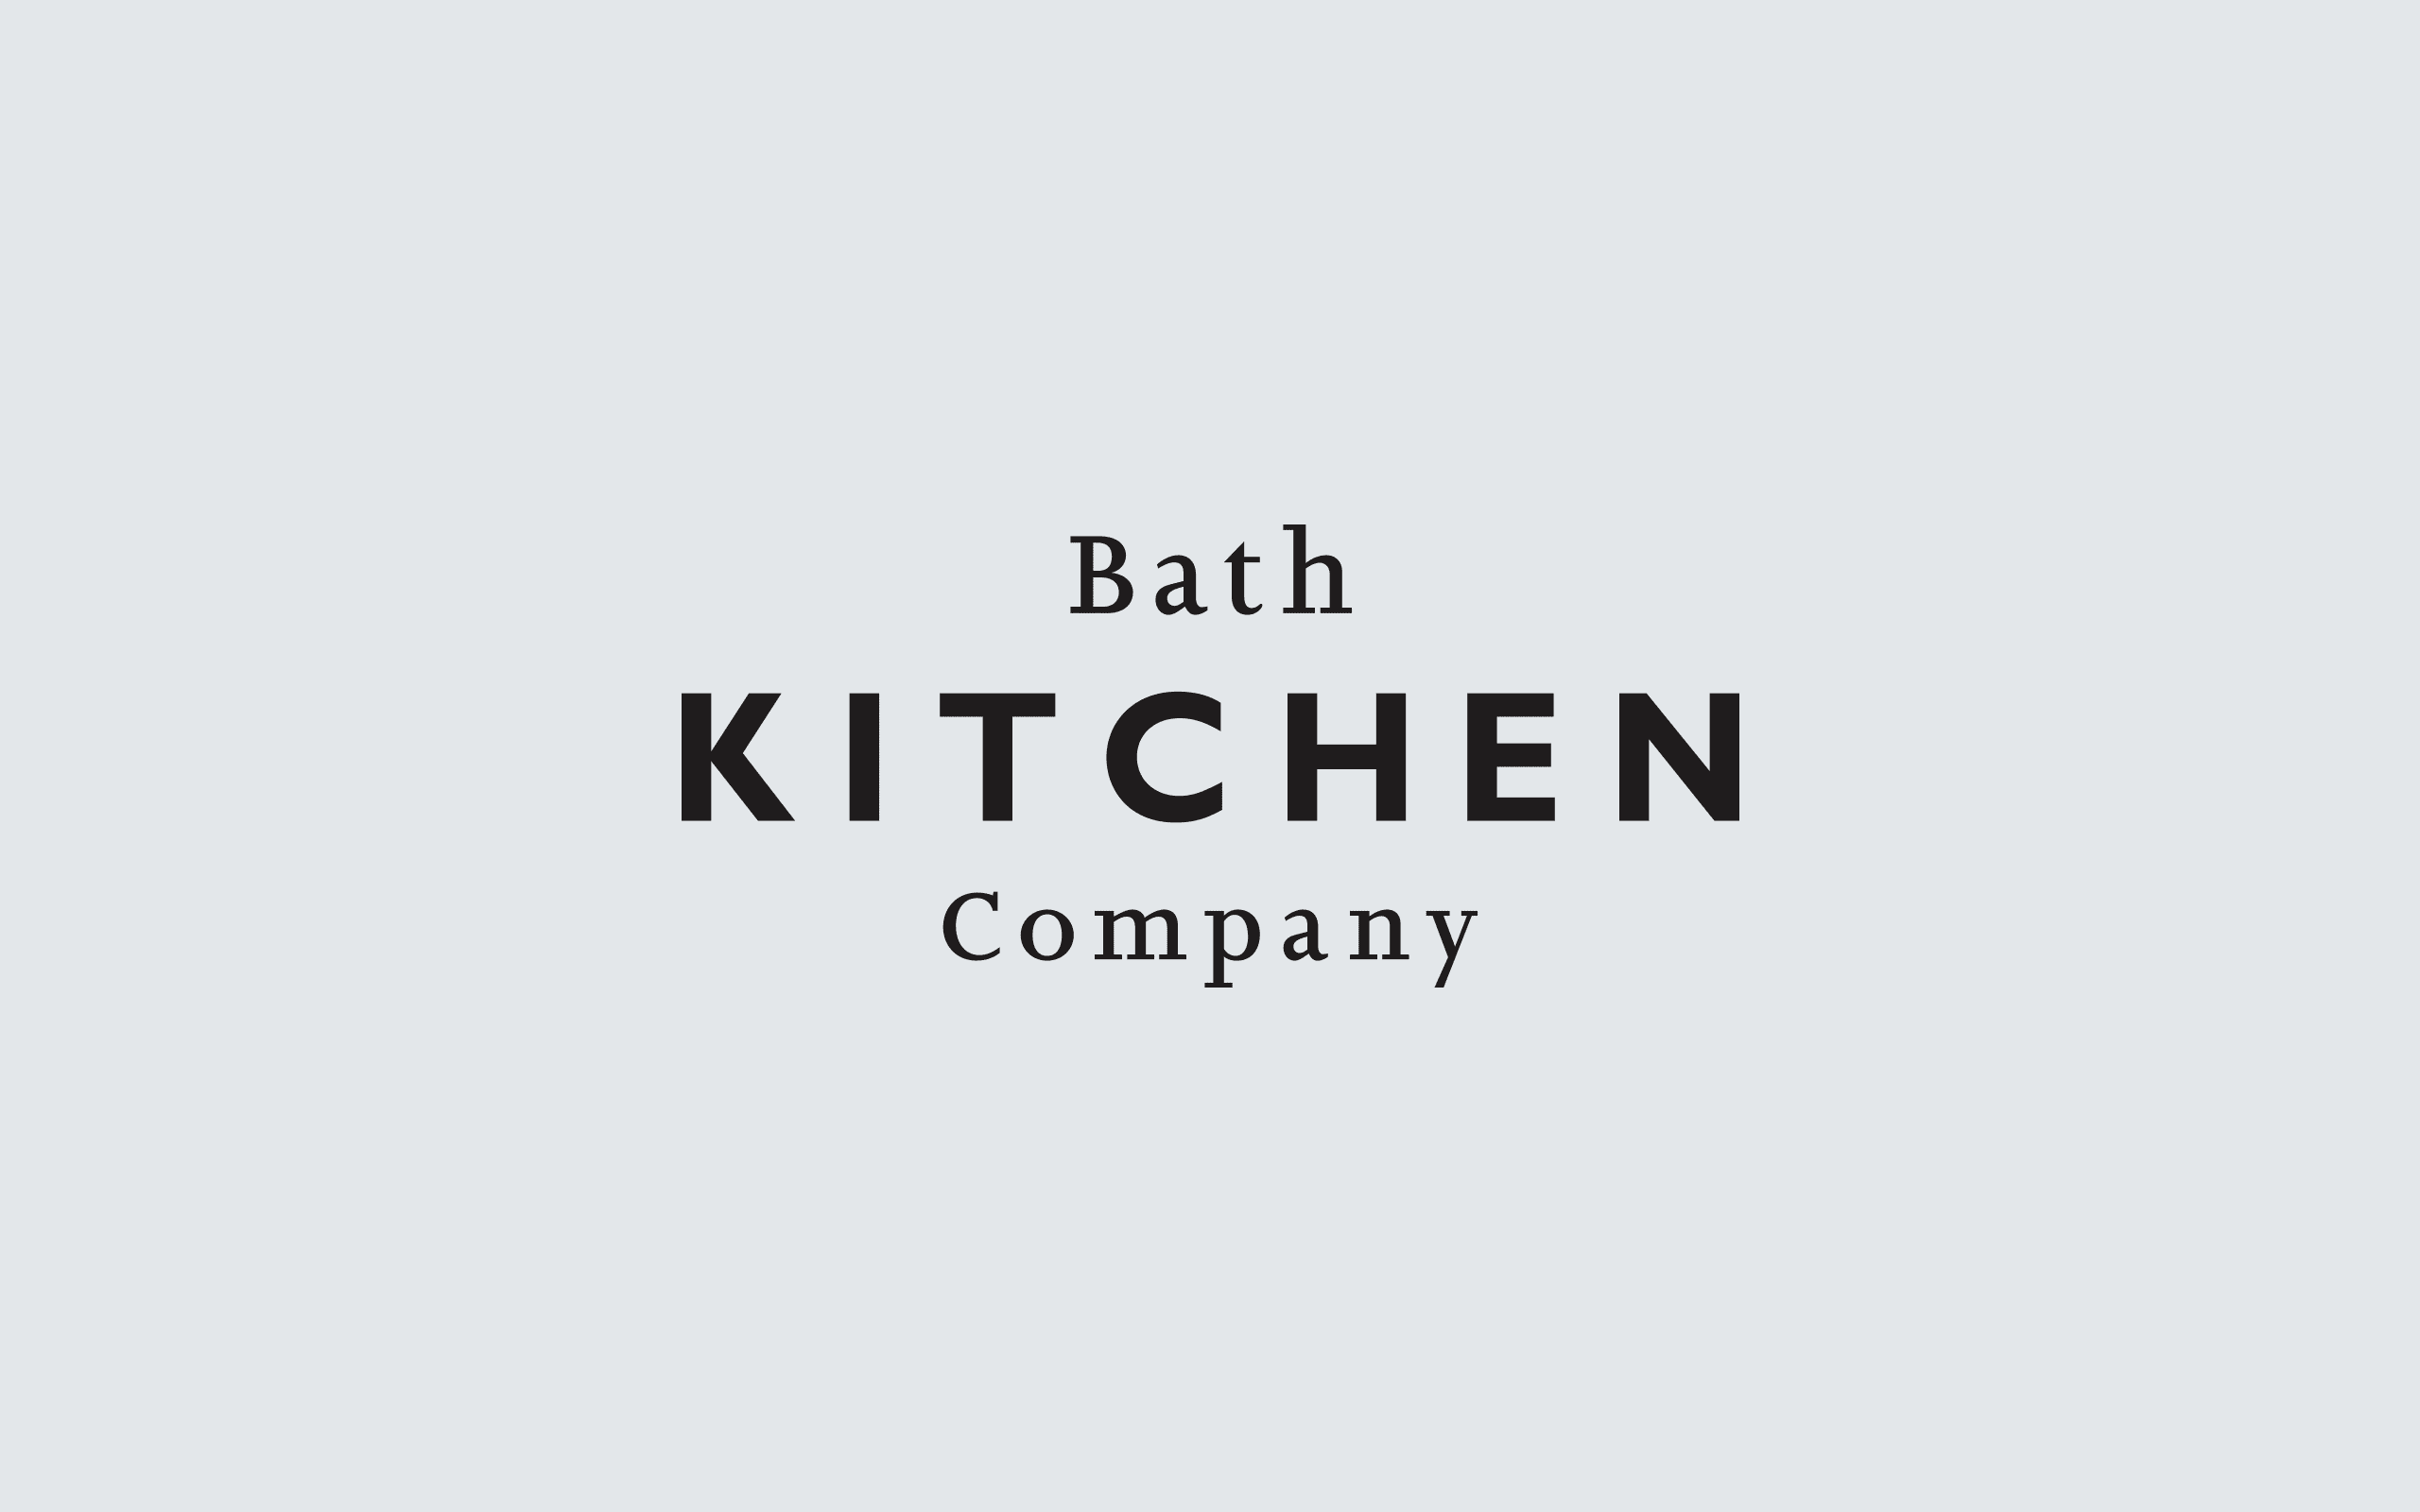 Bath Kitchen Company logo | Zeke Creative